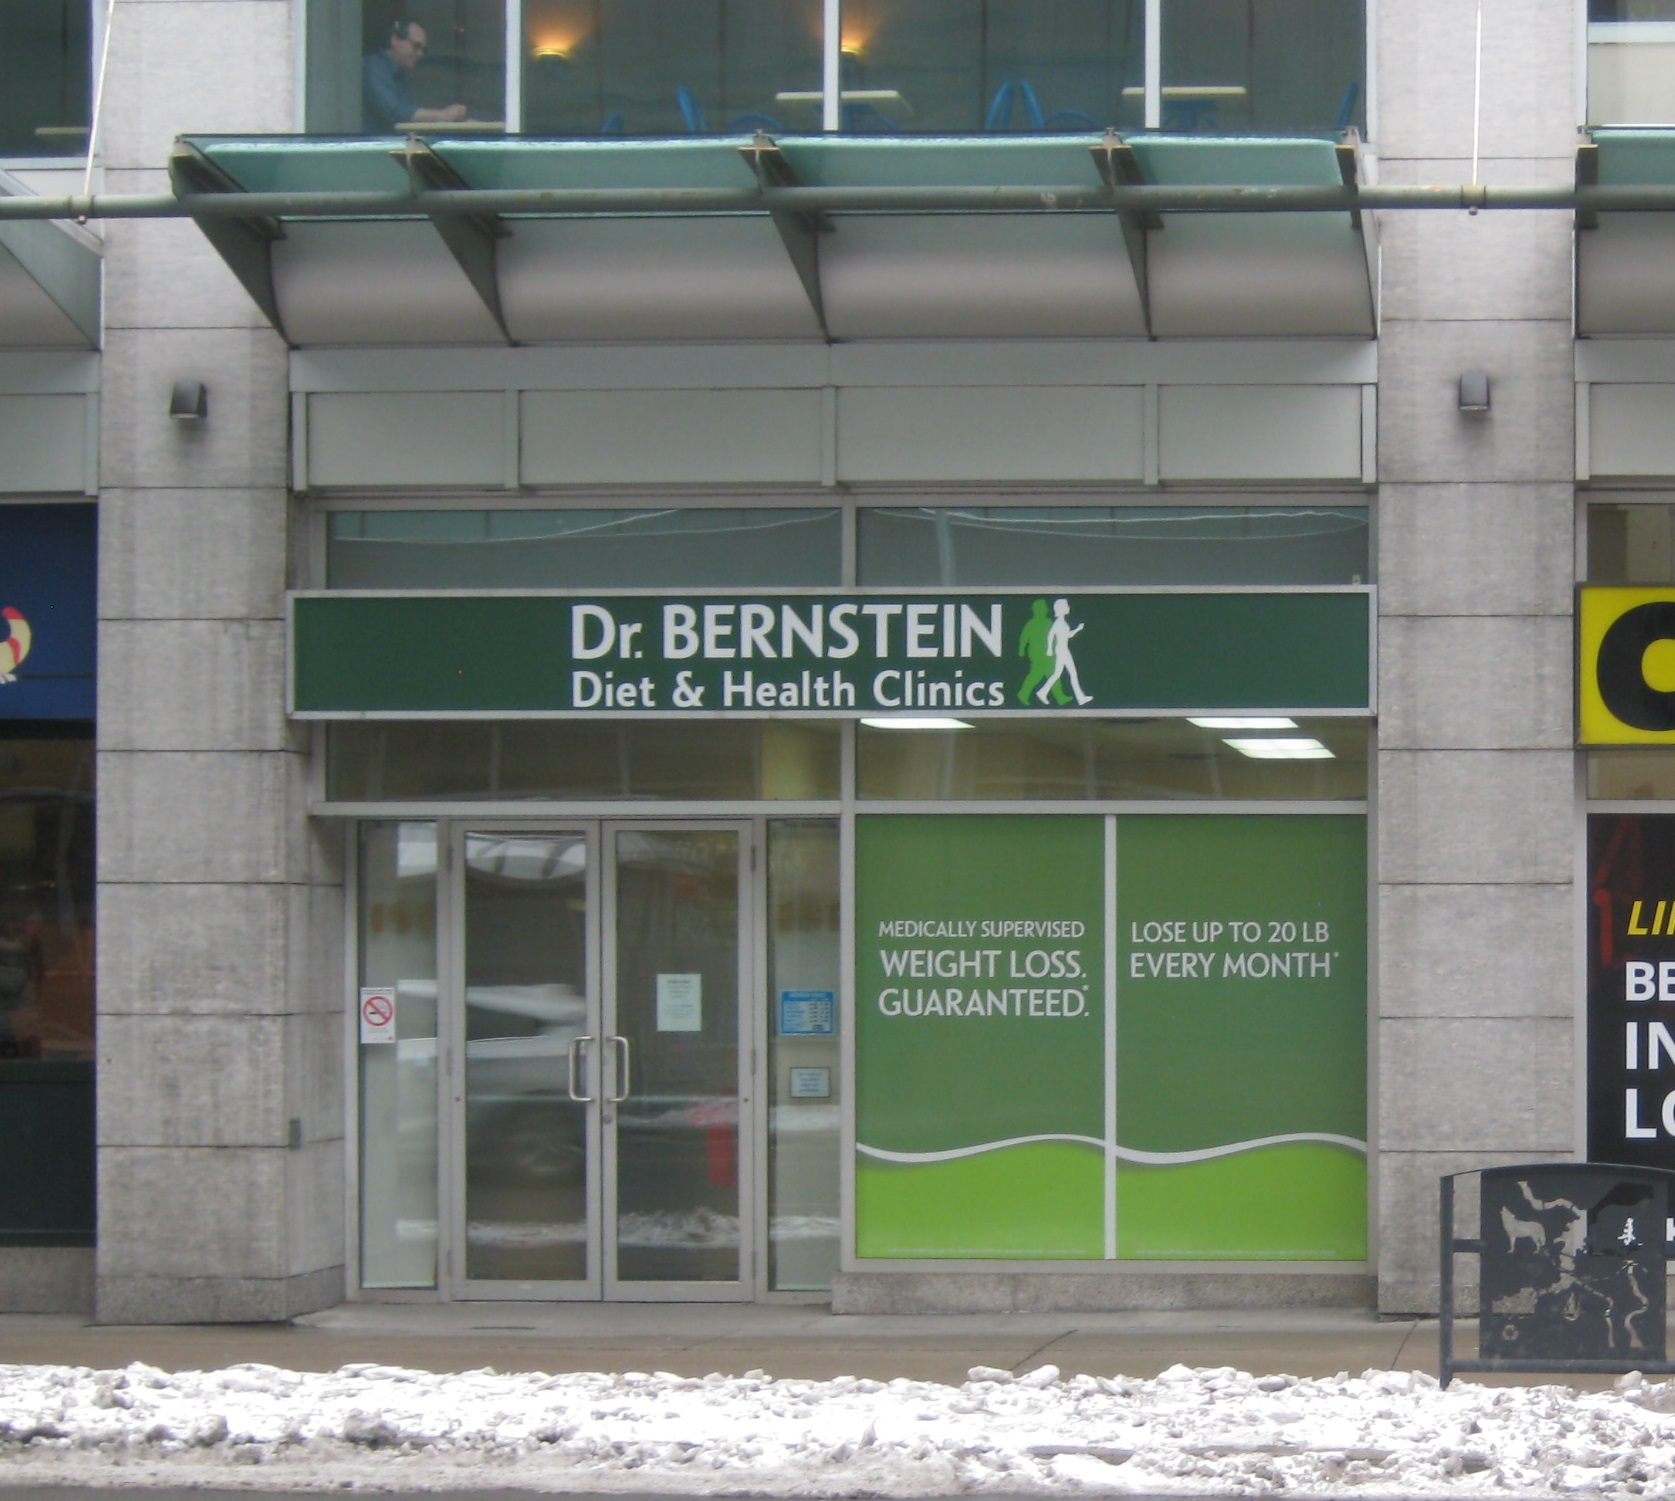 Dr. Bernstein Weight Loss & Diet Clinic, Bank St. - Ottawa, Ontario